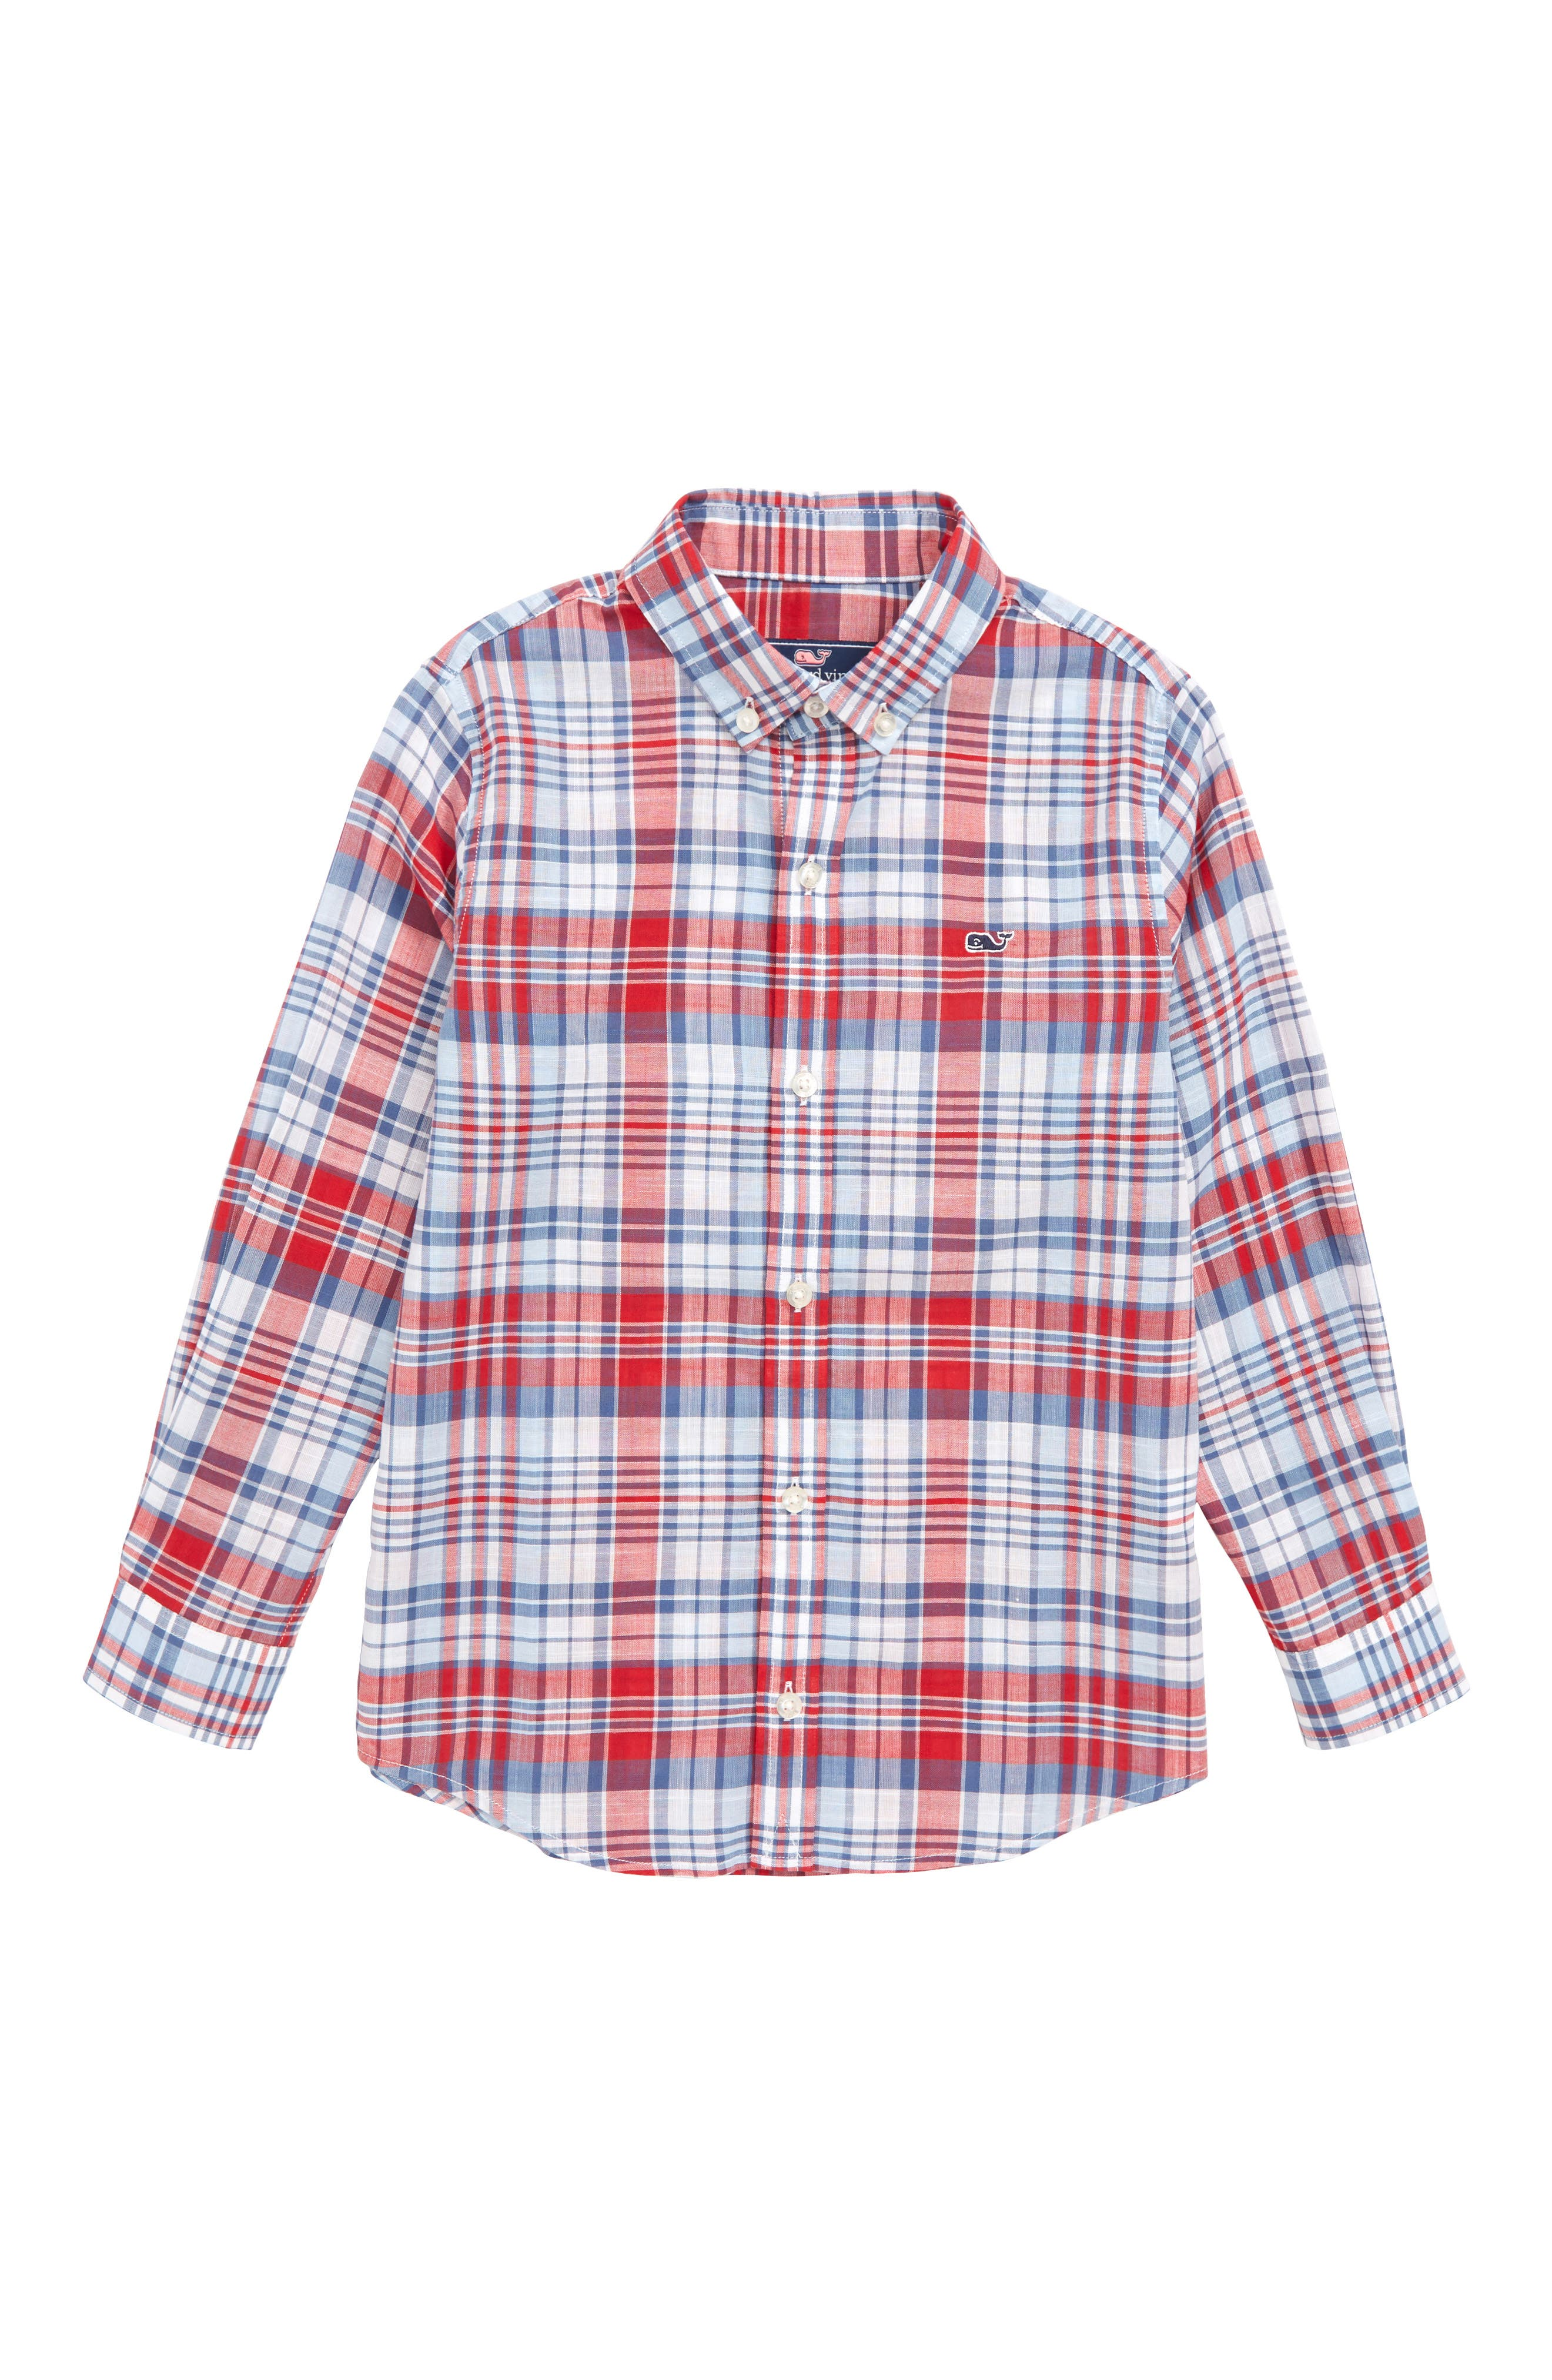 Firework Plaid Whale Shirt,                             Main thumbnail 1, color,                             Lighthouse Red